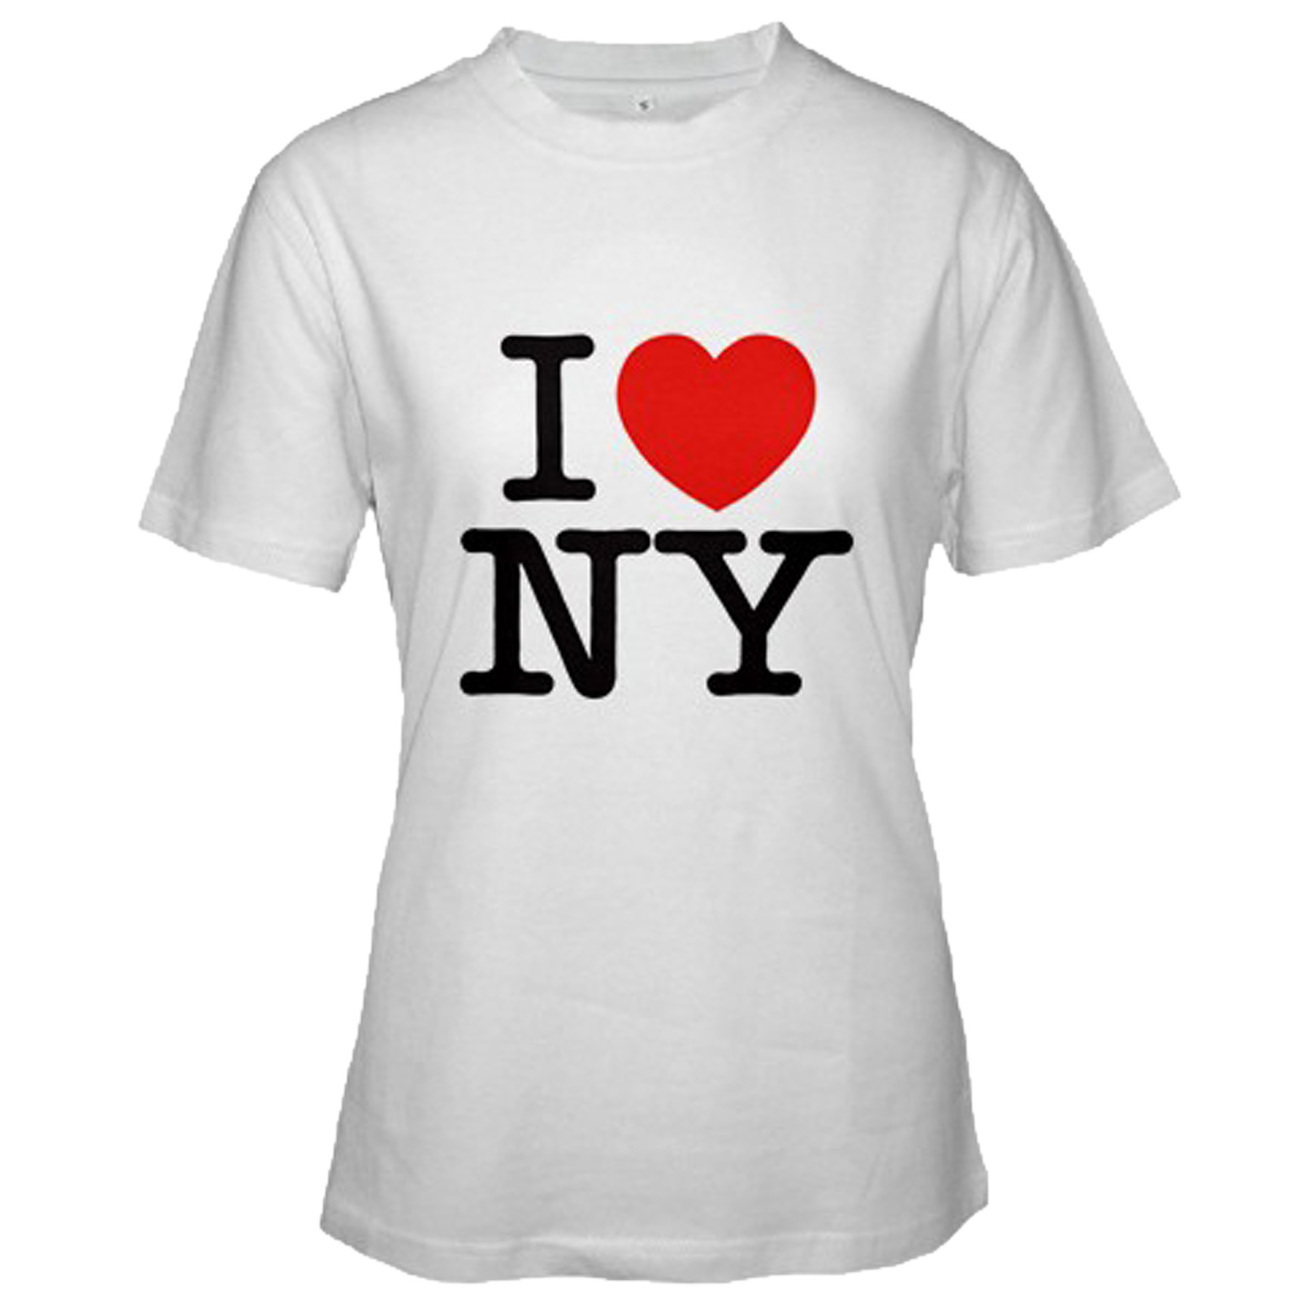 Love ny new york city new women s white t shirt t shirts amp tank